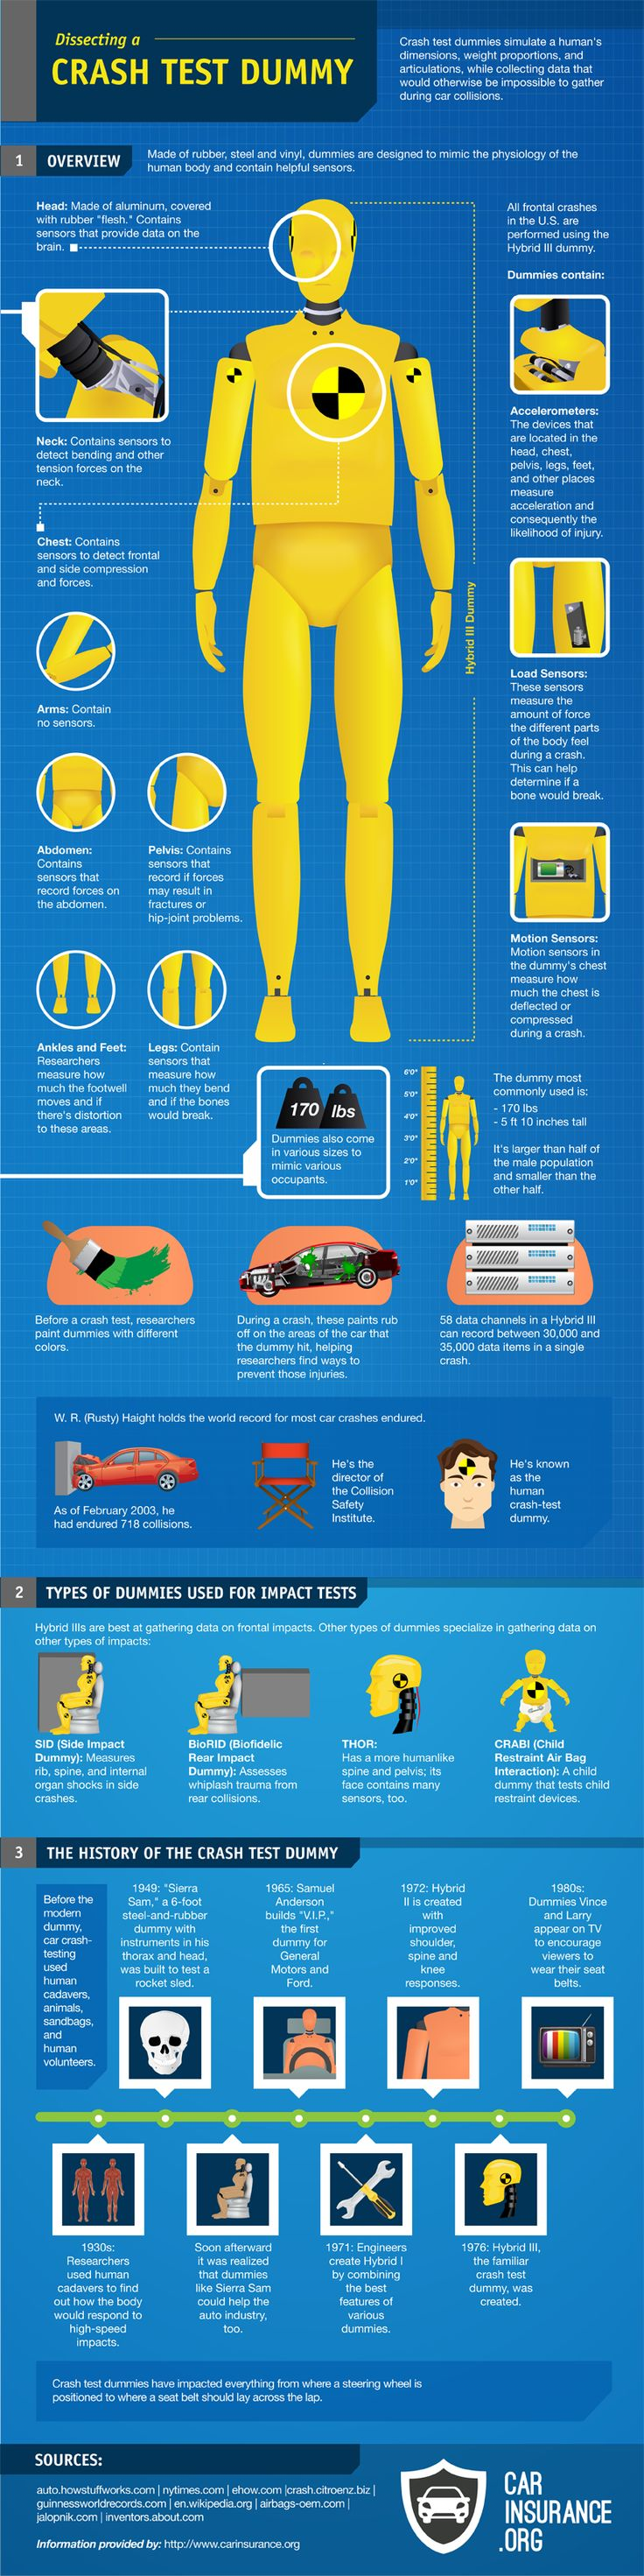 Infographic: Dissecting a Crash Test Dummy